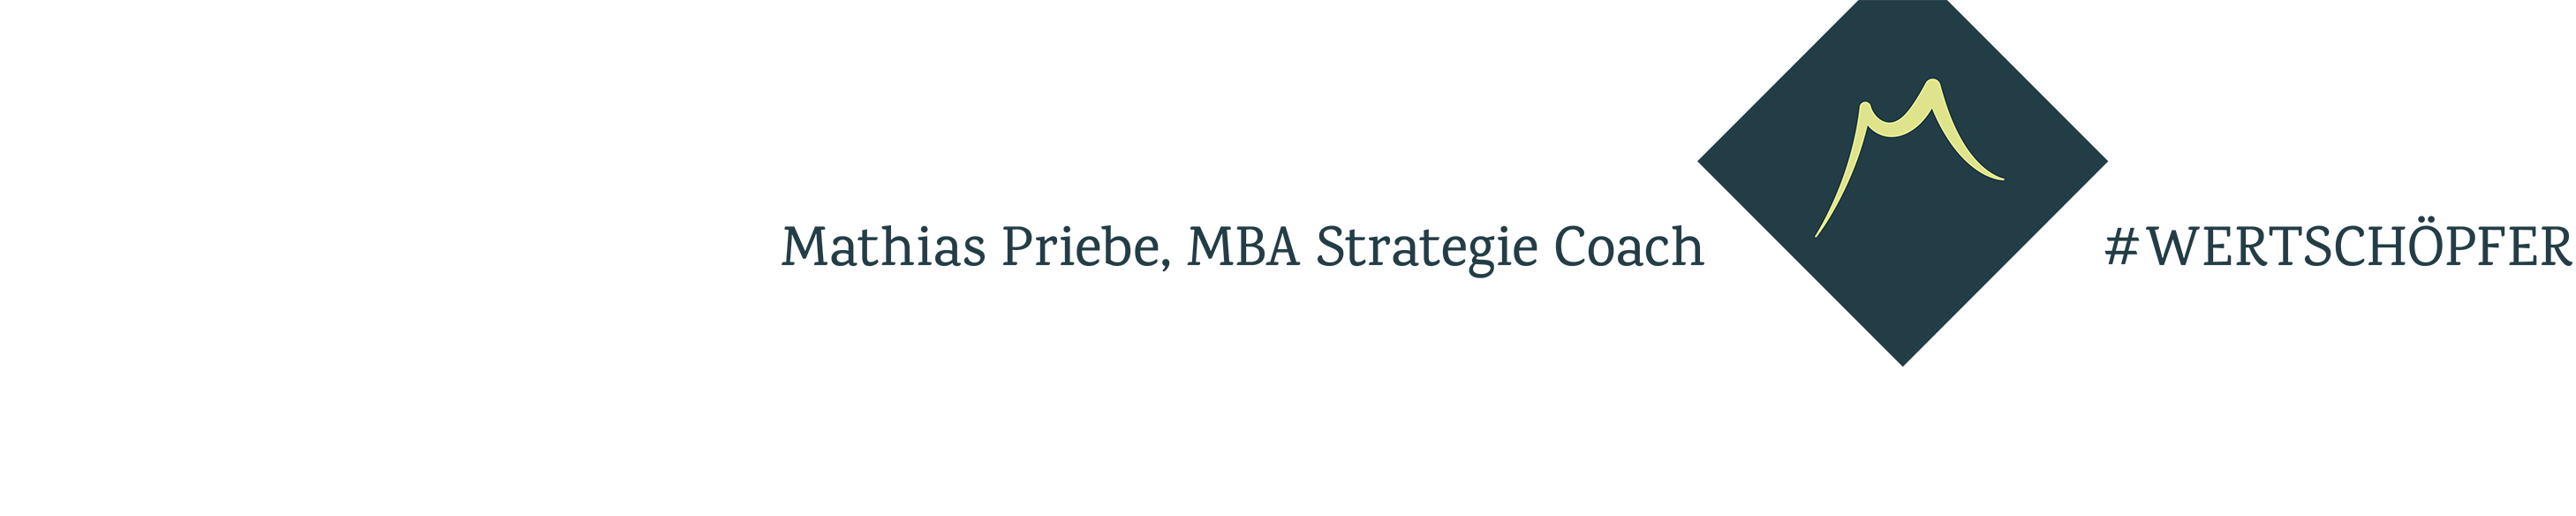 Mathias Priebe, MBA Strategie Coach